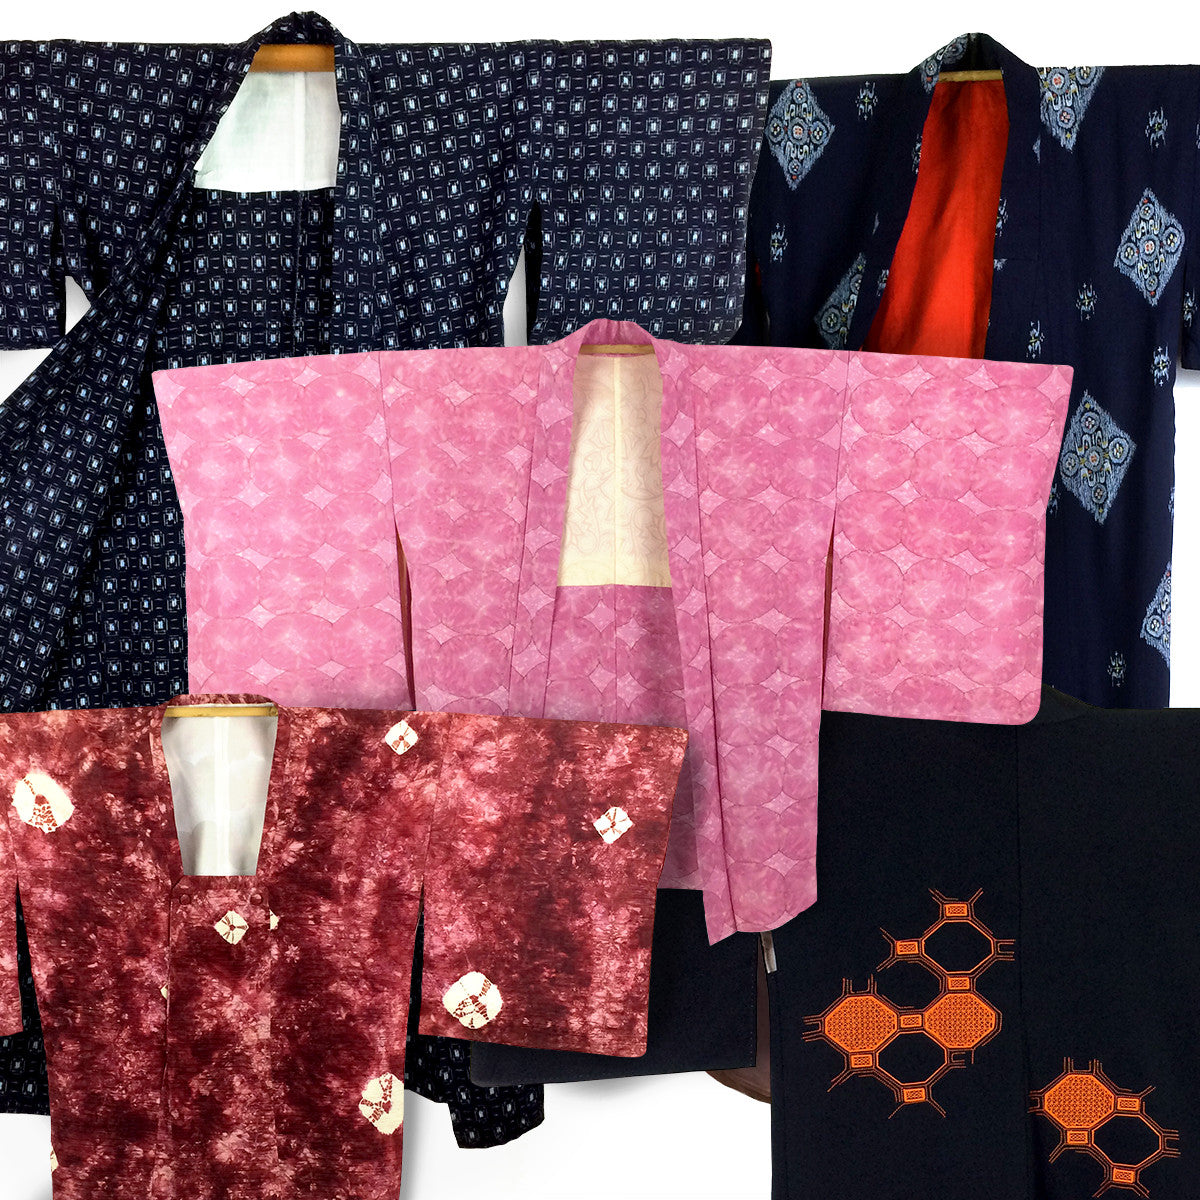 Some of our beautiful vintage kimonos